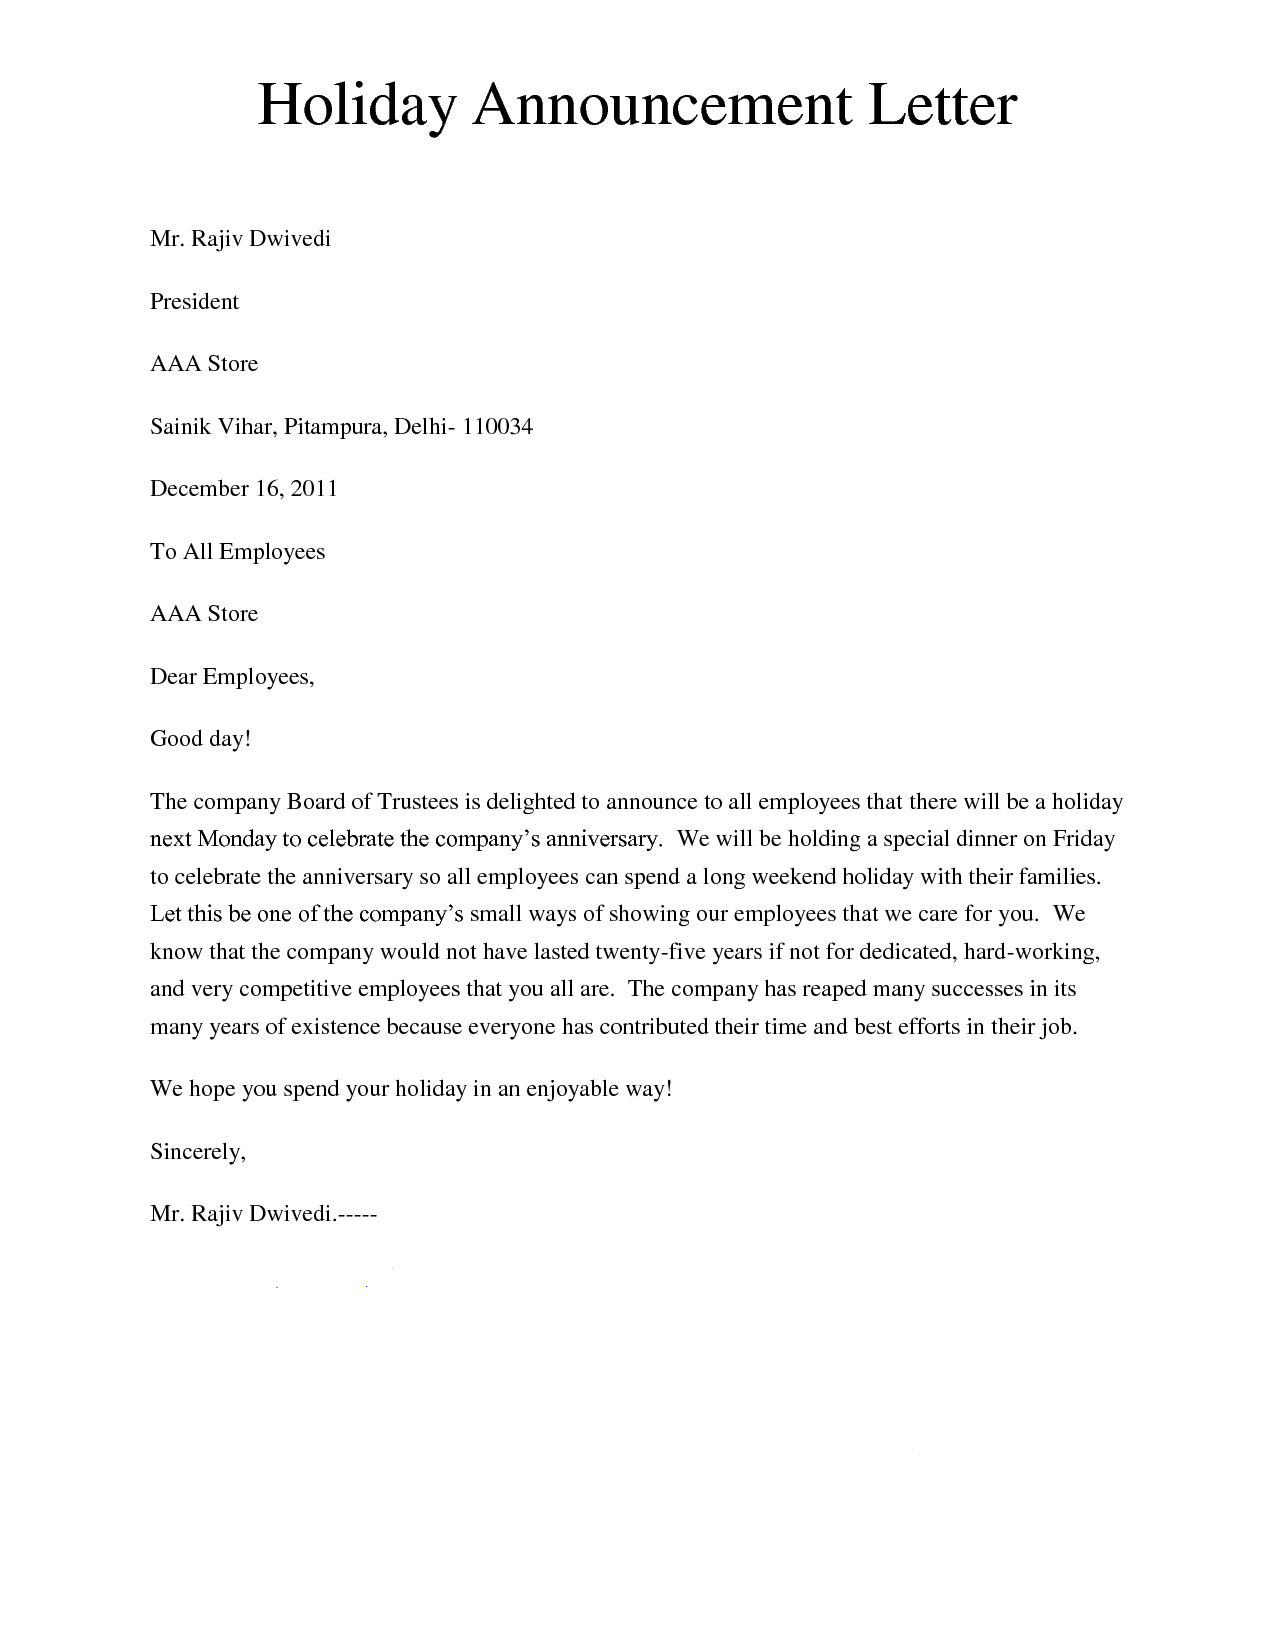 Free Holiday Letter Template - Holiday Announcement Letter Giving A Letter to Inform About the